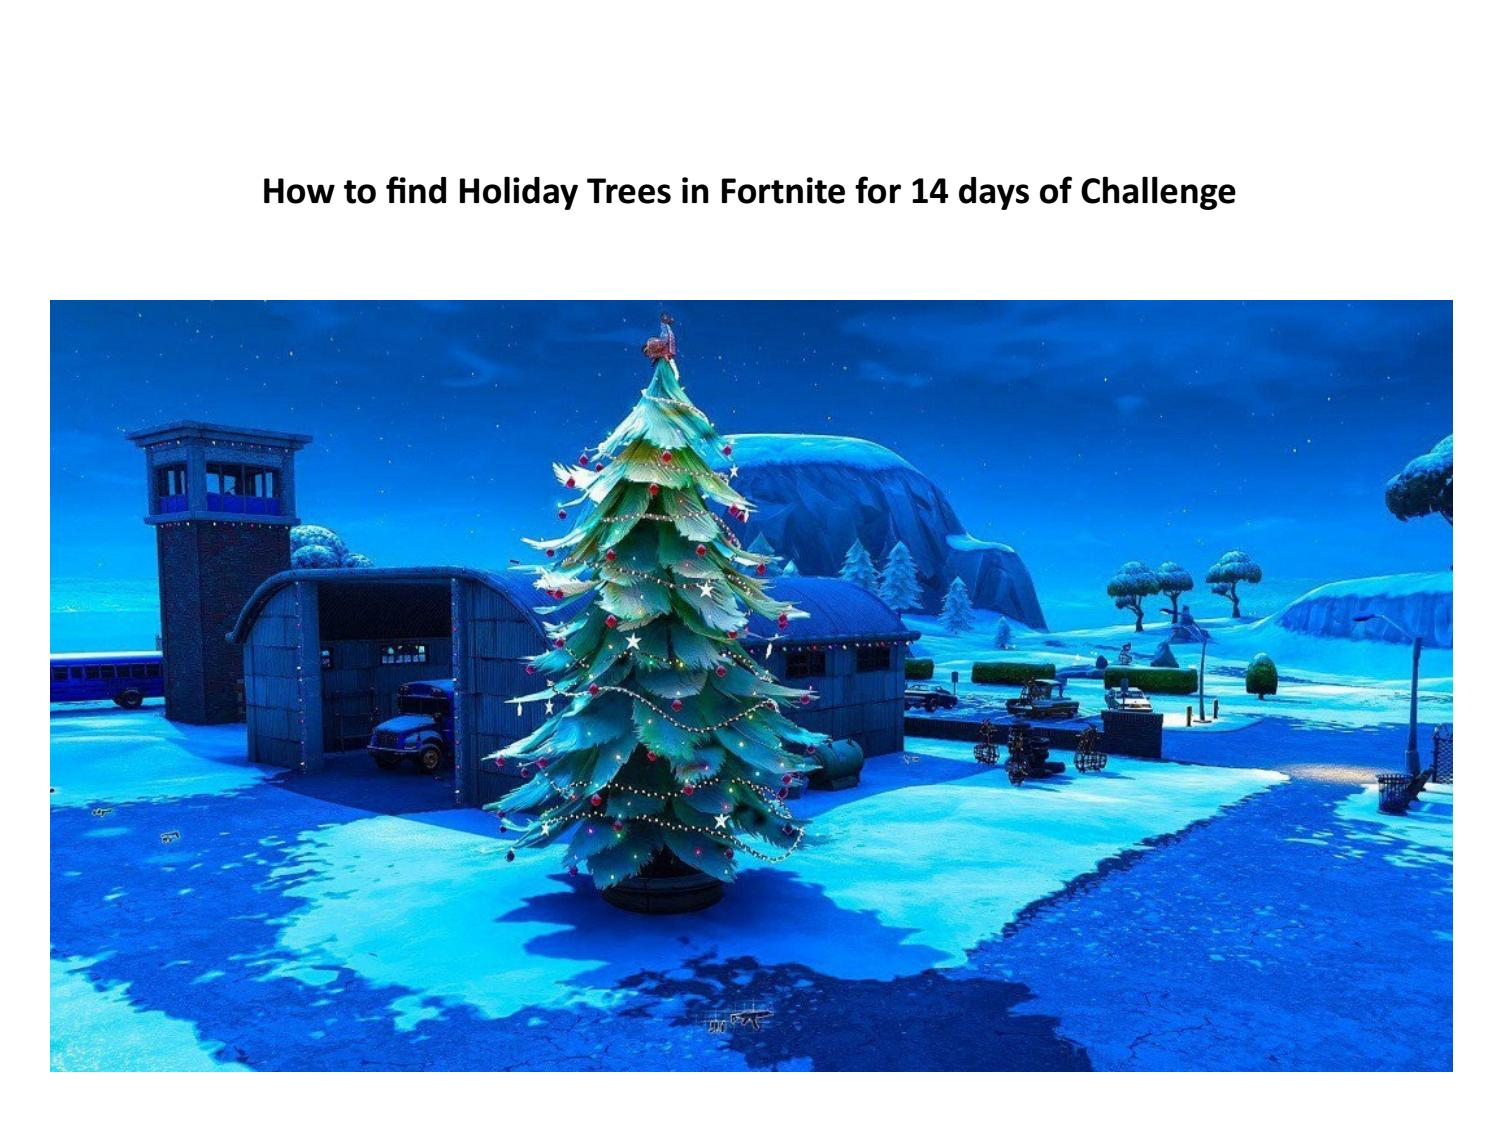 Fortnite 14 Days Of Christmas.How To Find Holiday Trees In Fortnite For 14 Days Of